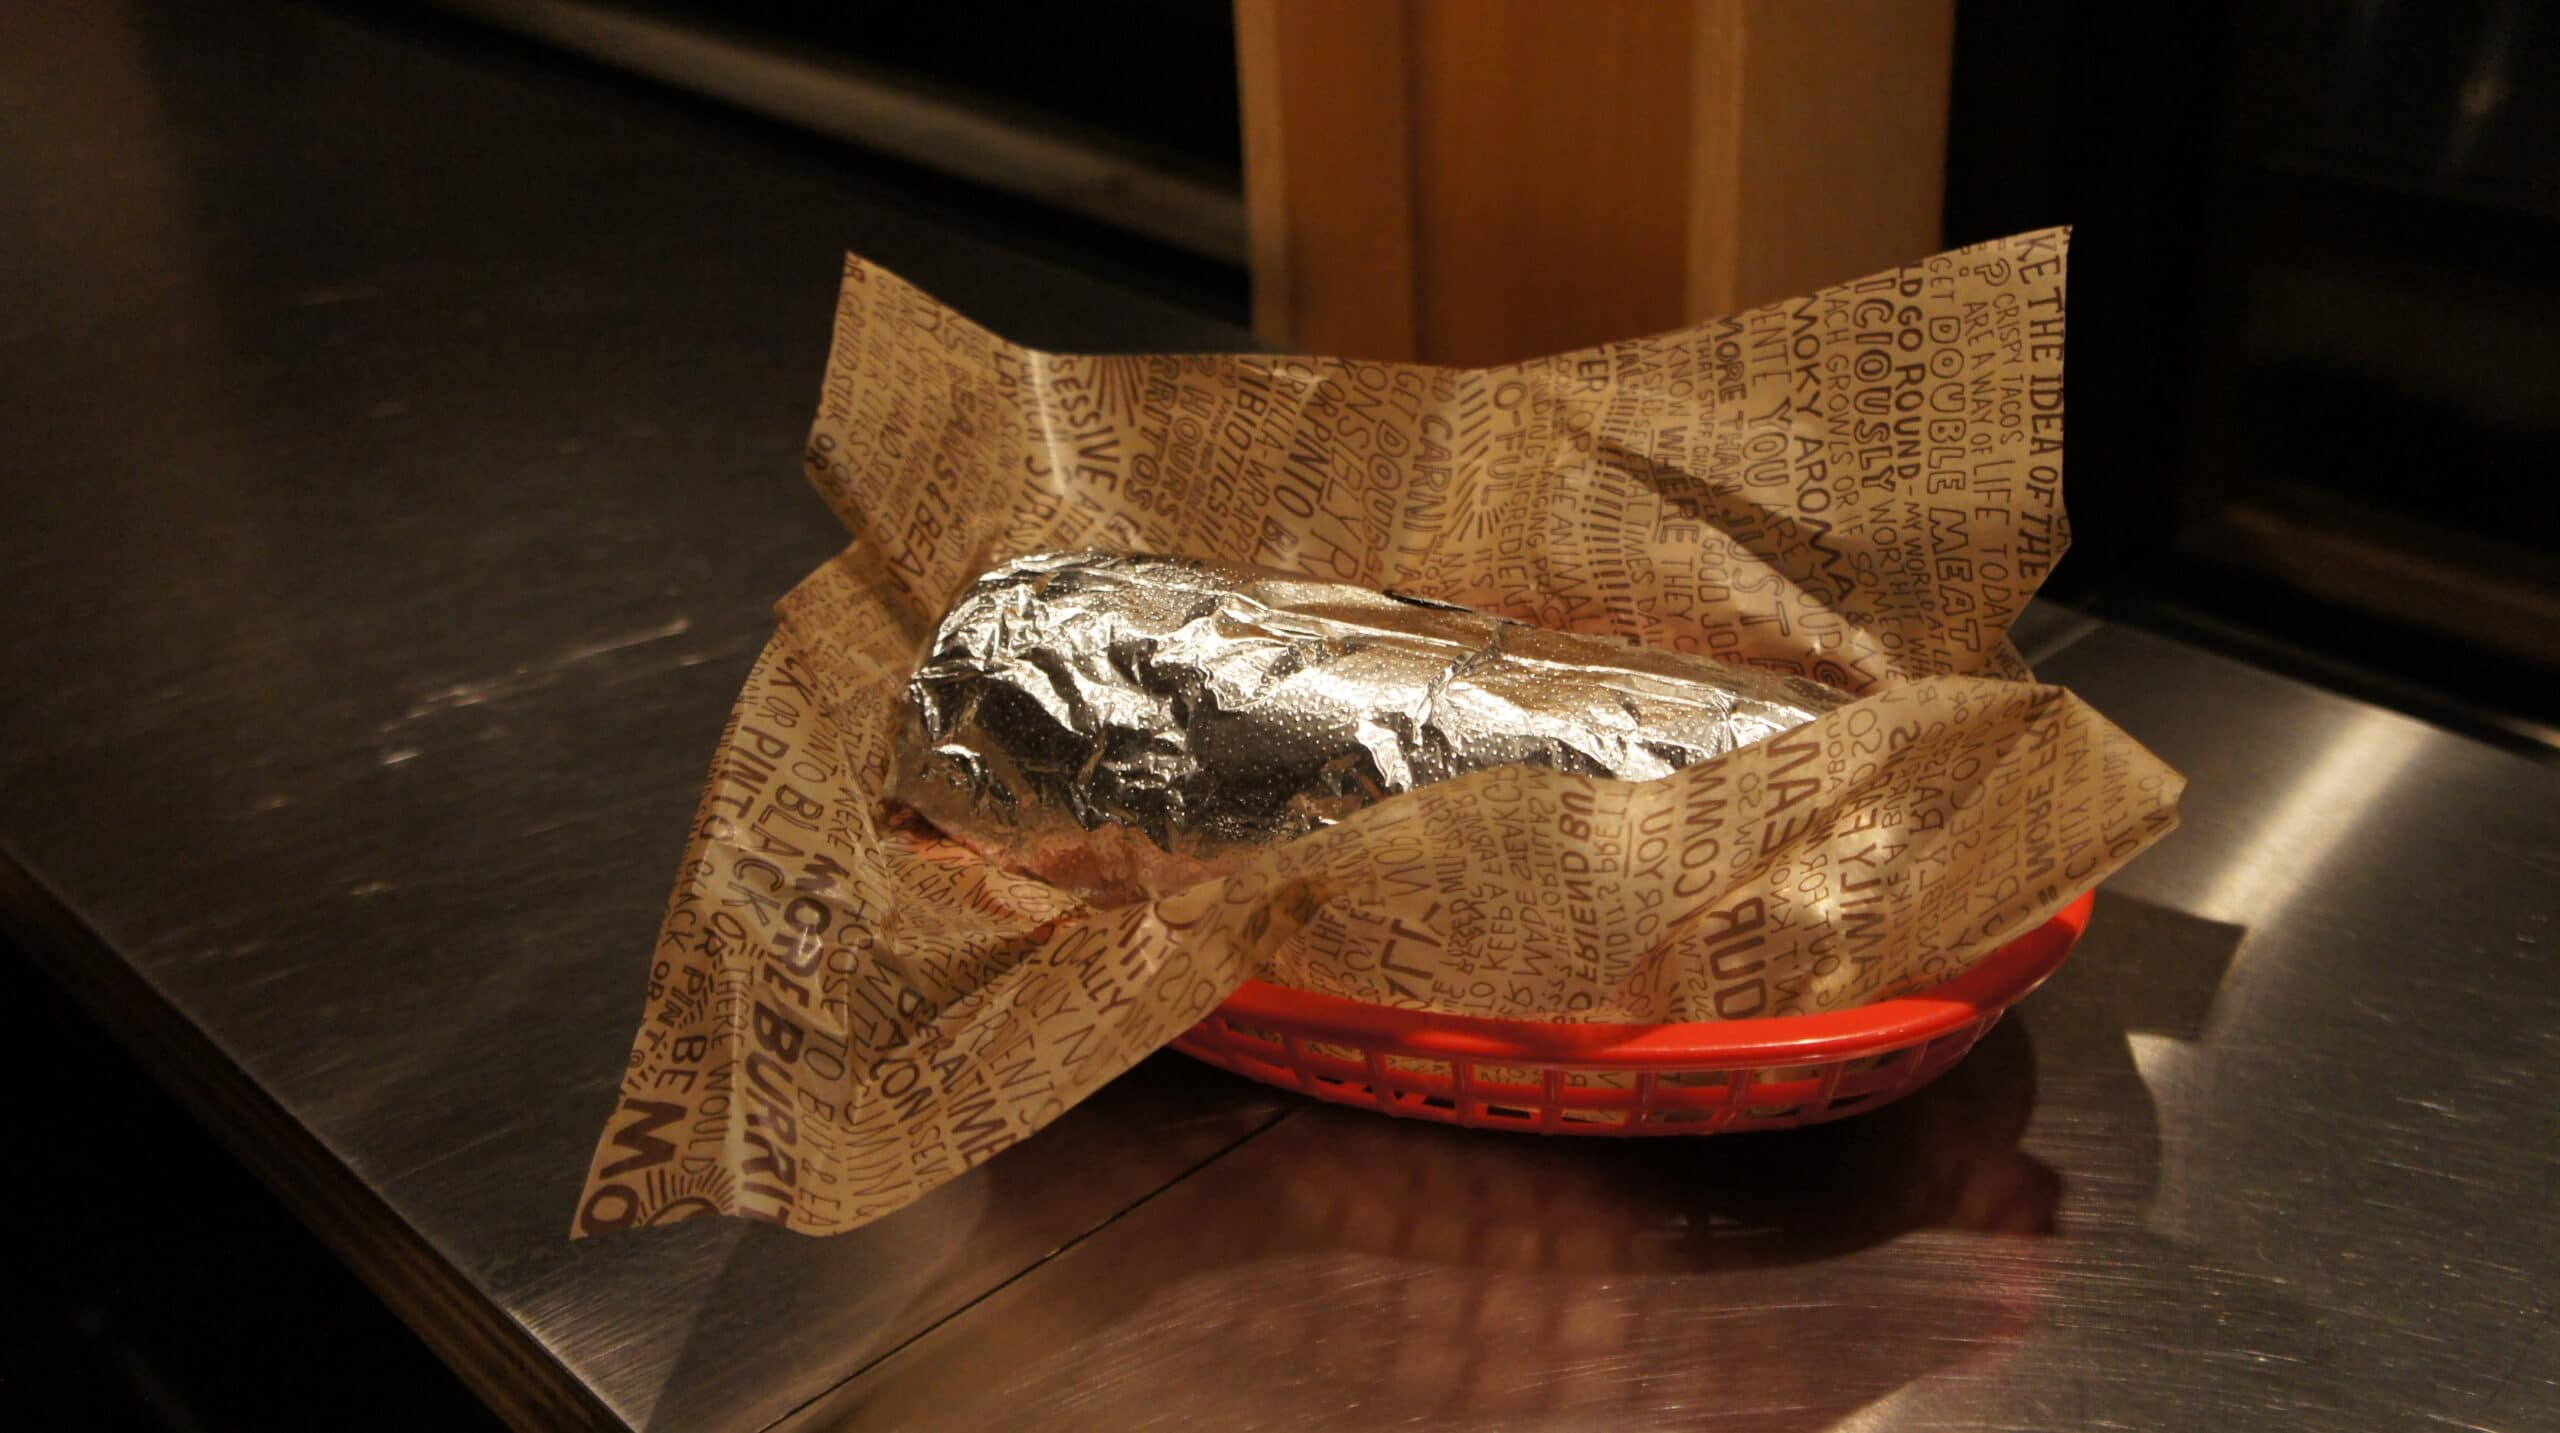 Can You Microwave Chipotle Burrito?